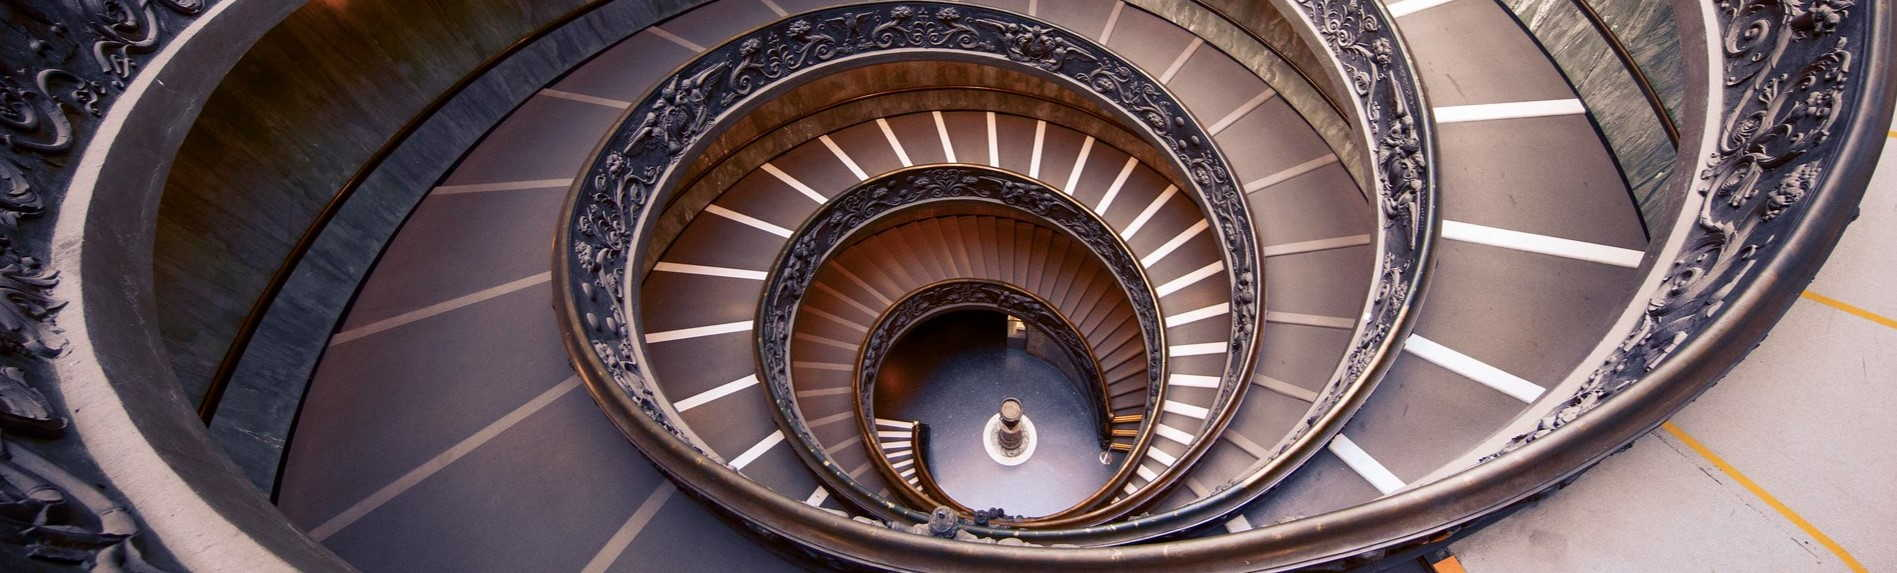 Why was the Bramante Staircase Built?